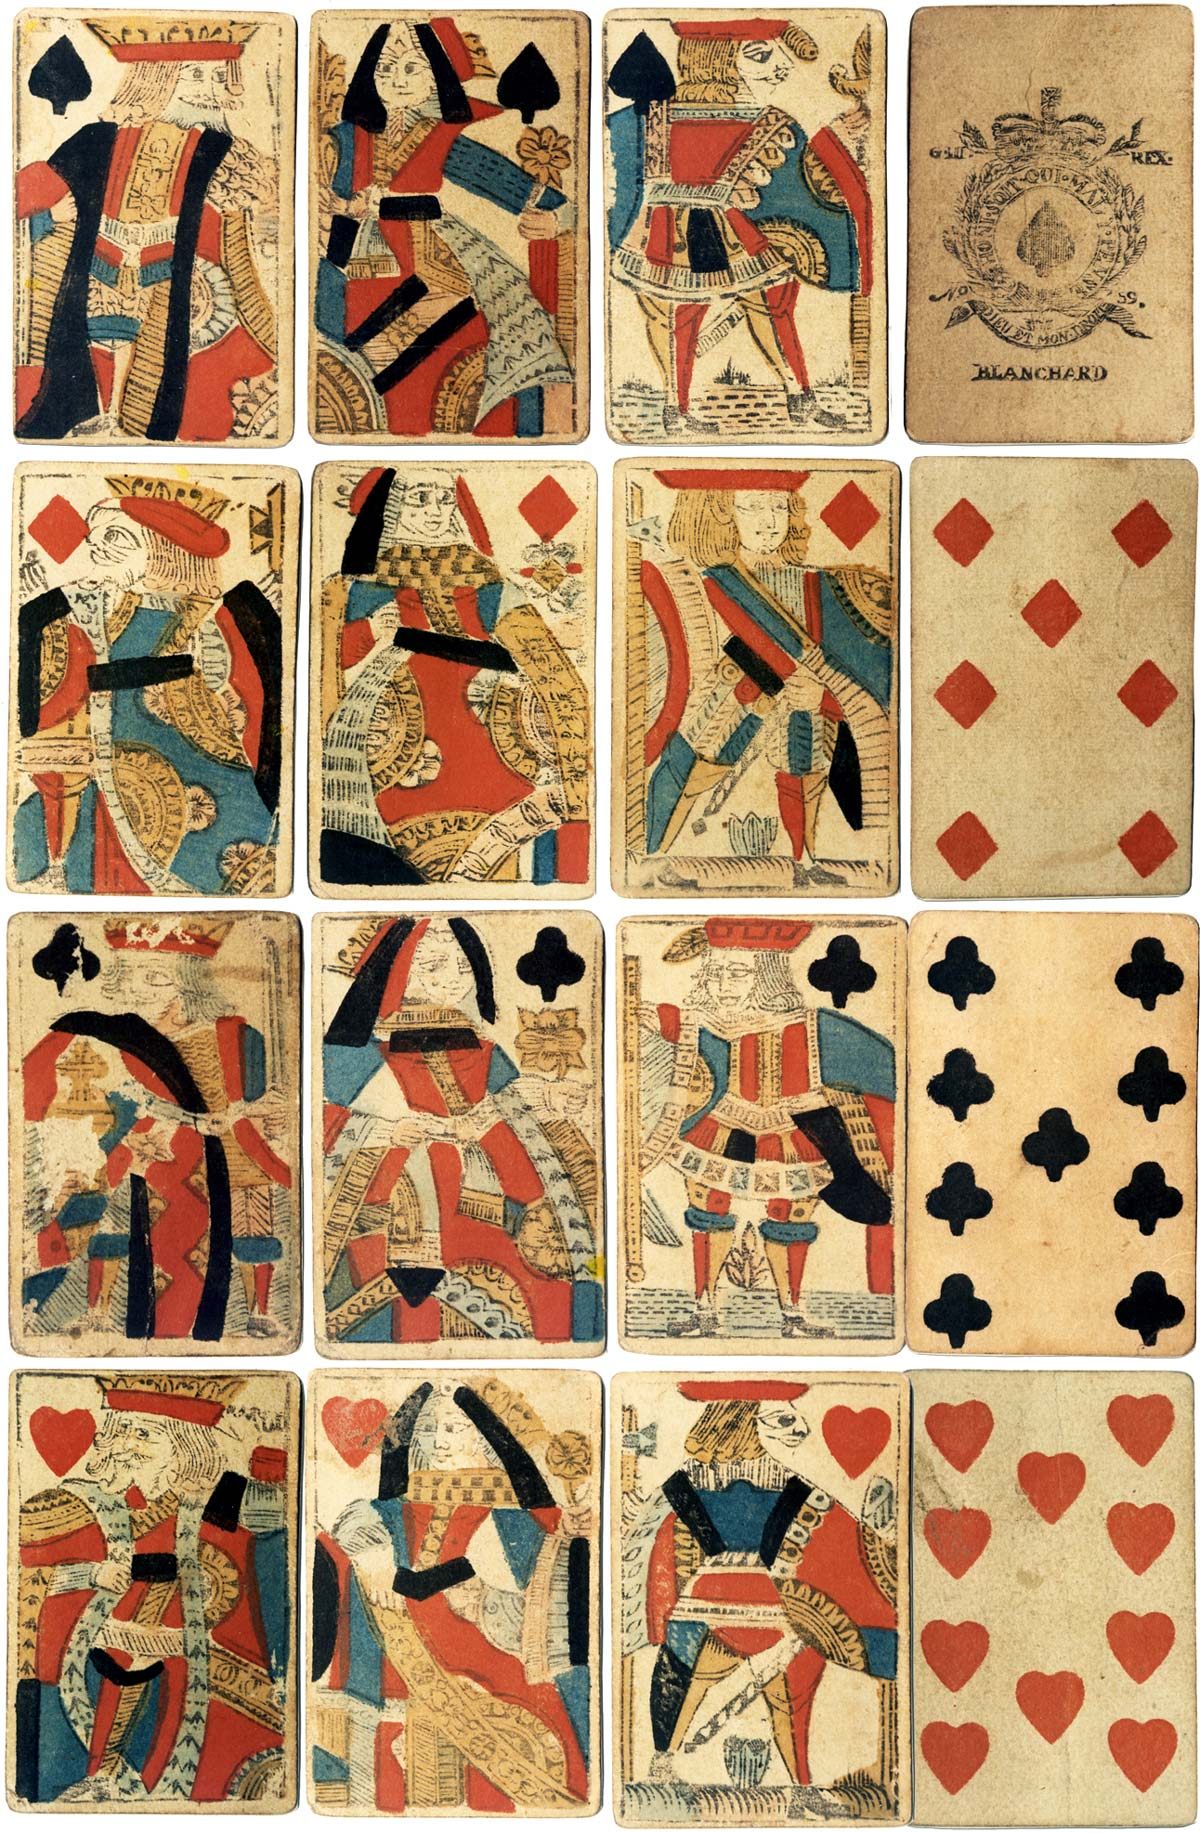 Cards by Blanchard, c.1770